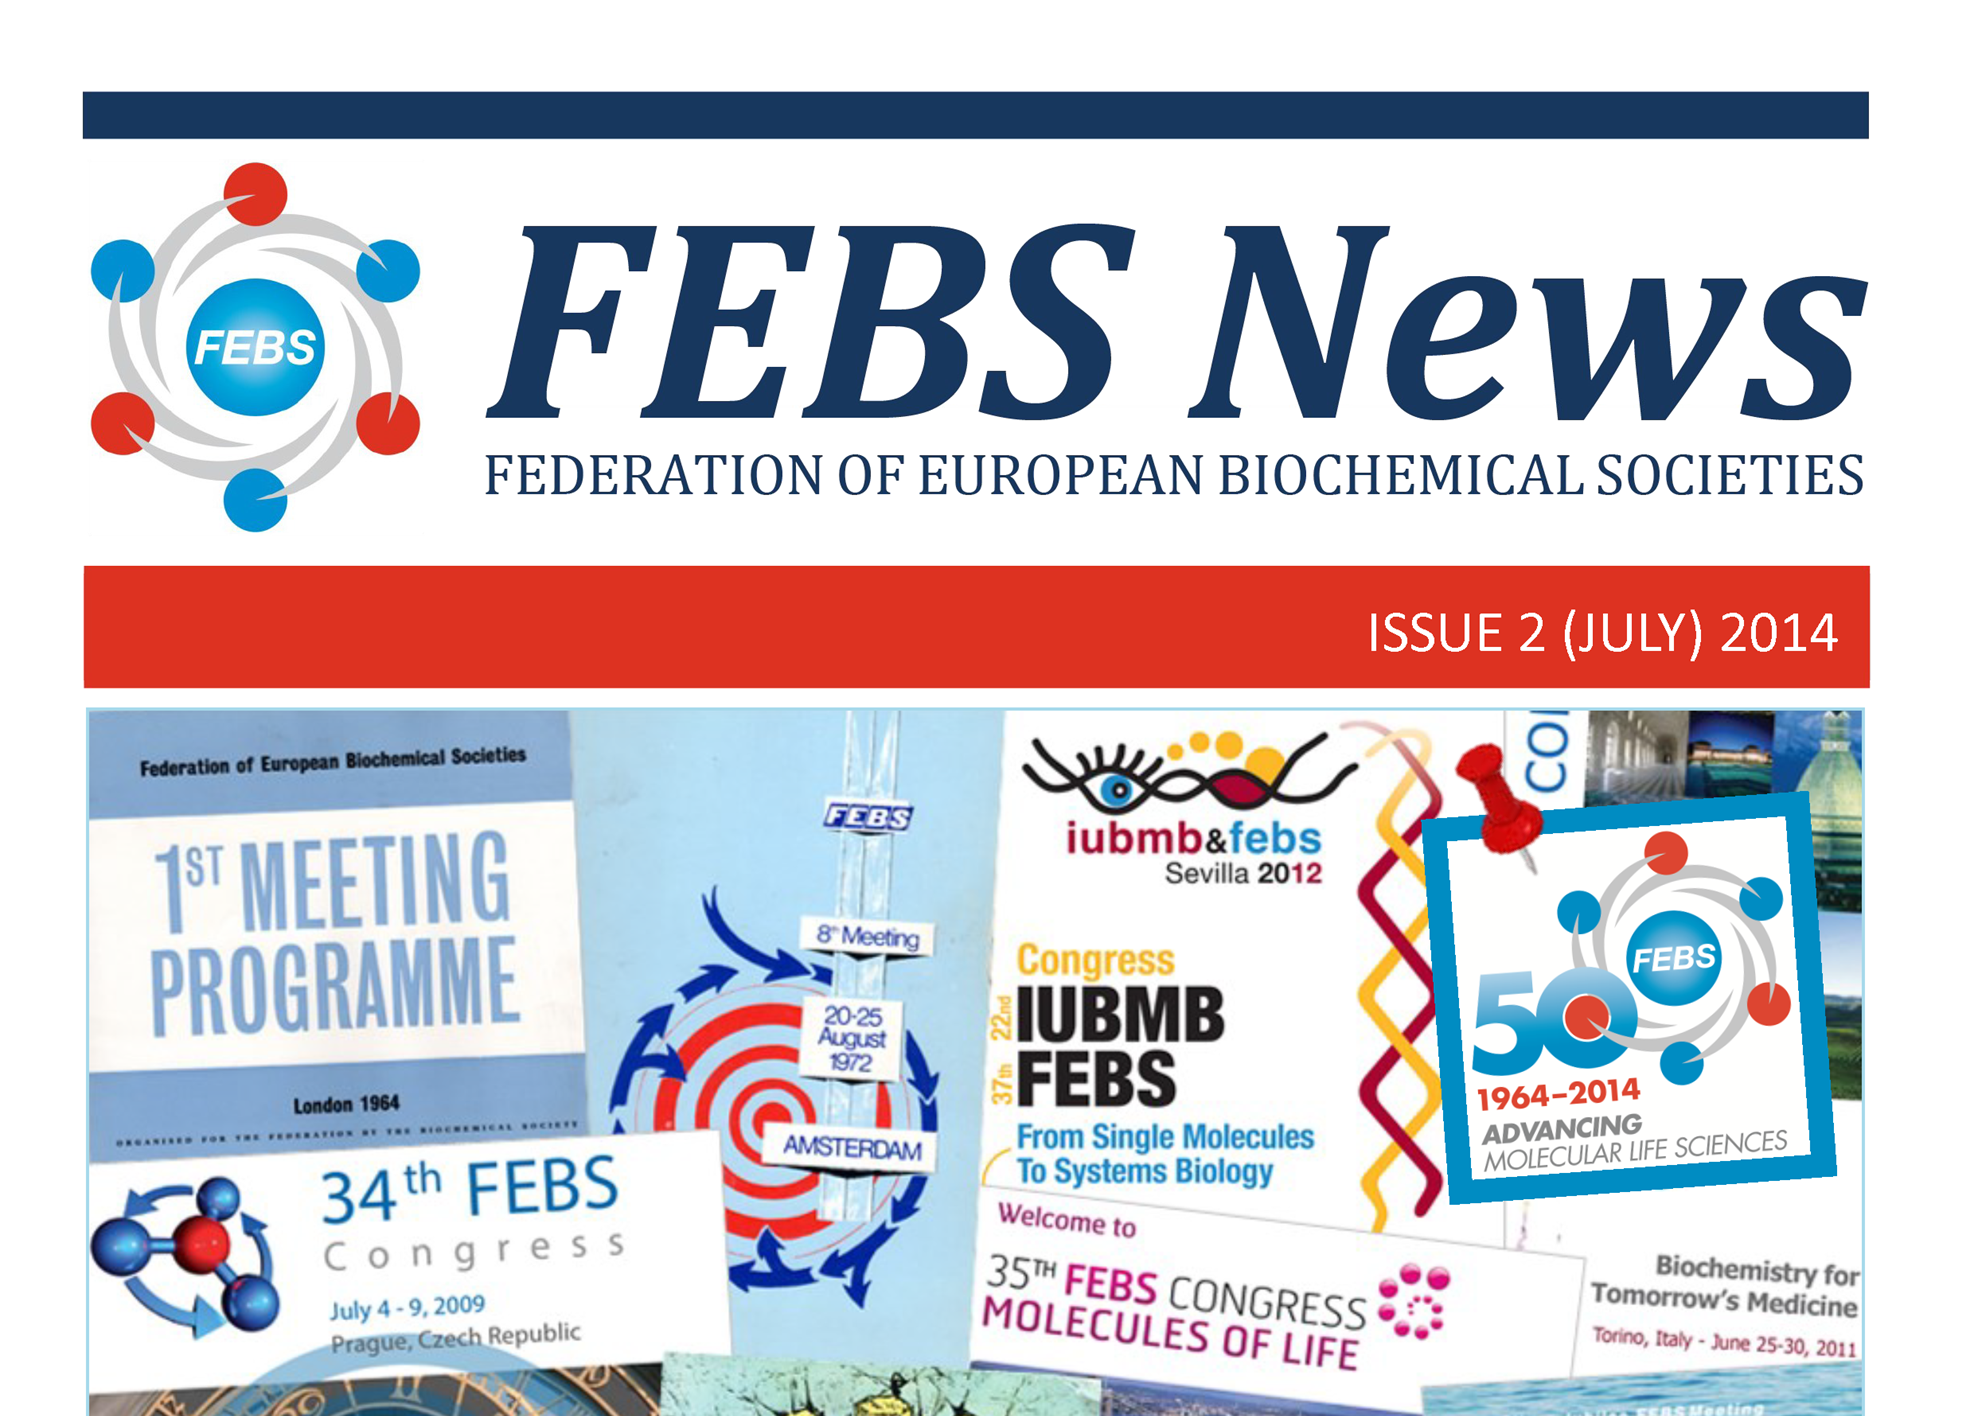 FEBS News July 2014